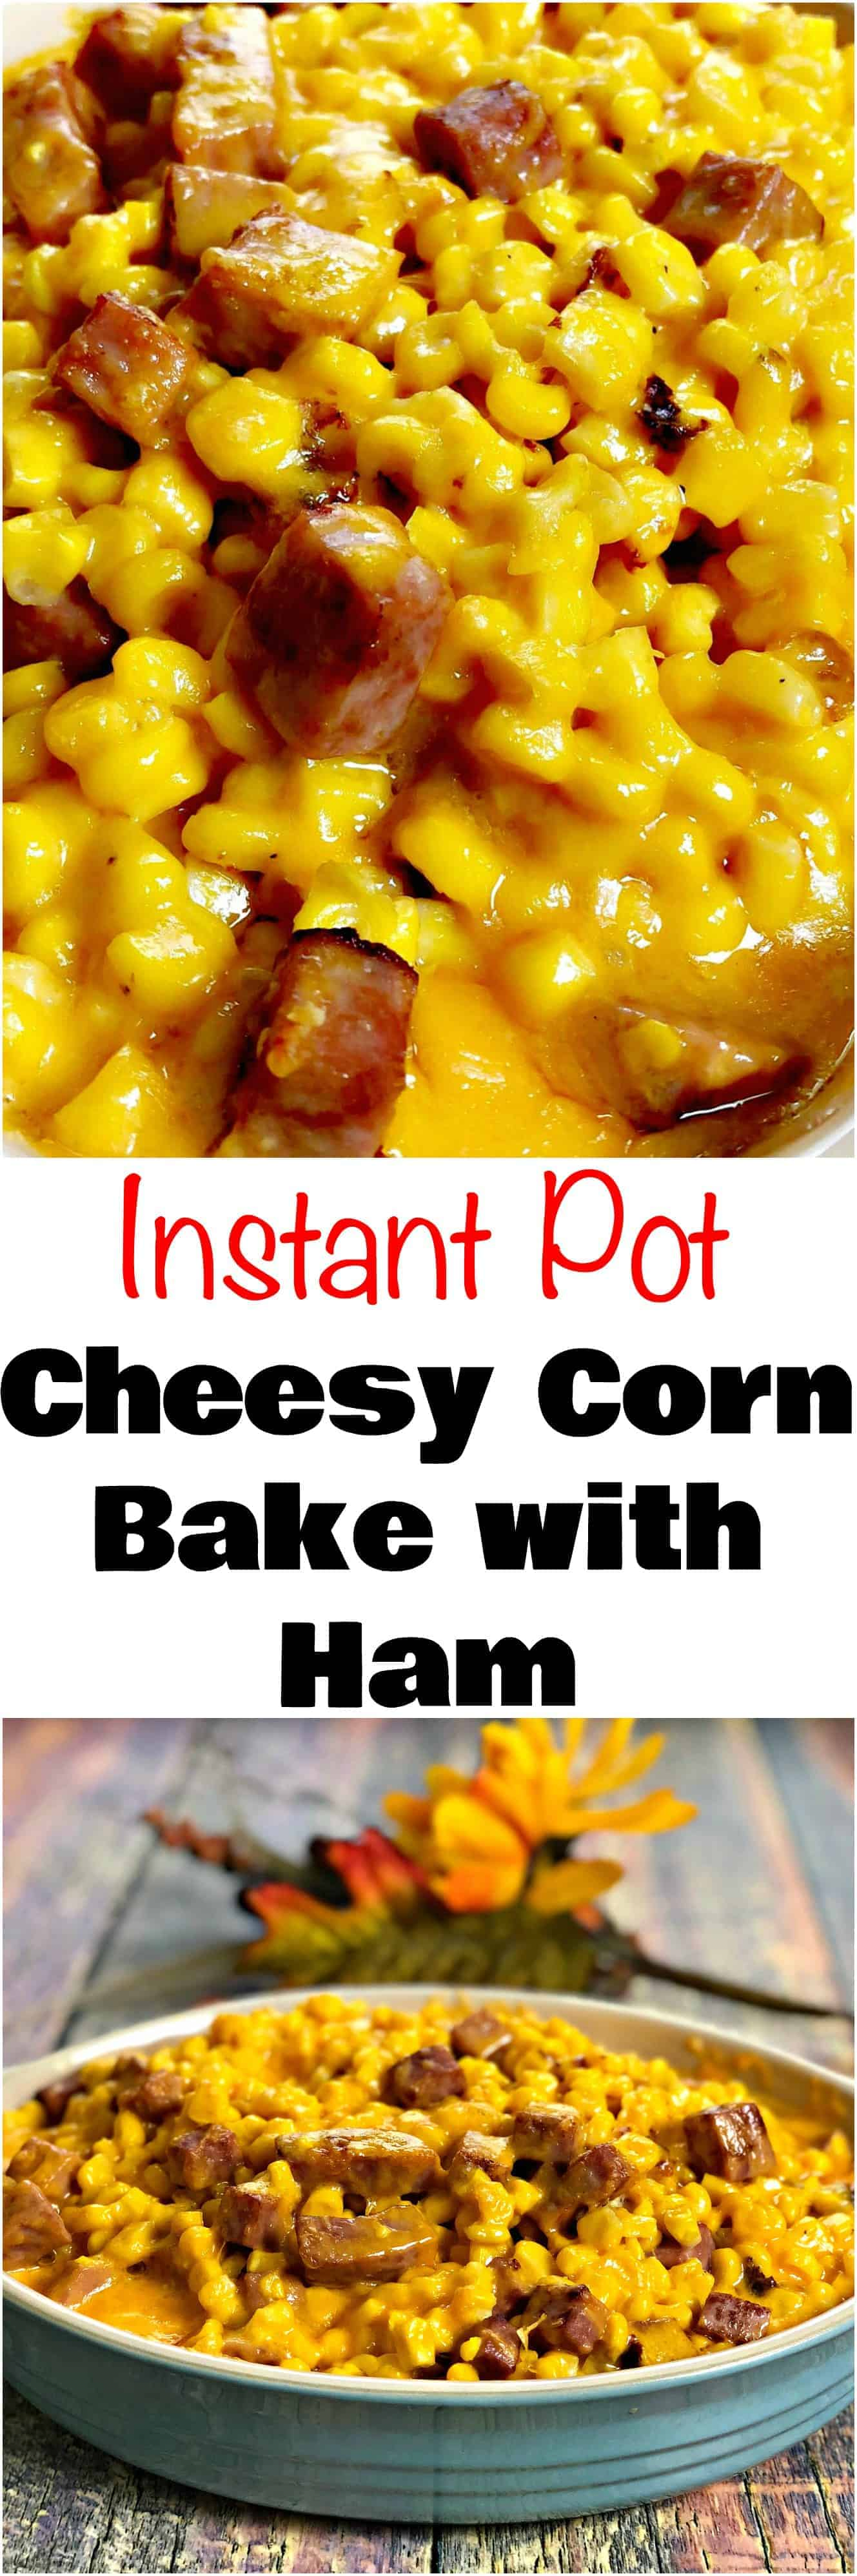 Instant Pot Cheesy Creamed Corn with Ham is a Fiorella's Jack Stack BBQ cheesy corn bake casserole recipe perfect for cookouts, Christmas, and holidays. #SideDishes #InstantPot #InstantPotRecipes #PressureCooker #PressureCookerRecipes #ComfortFood #ComfortFoodRecipes #Holidays #Thanksgiving #ThanksgivingRecipes #Christmas #ChristmasRecipes #NewYears